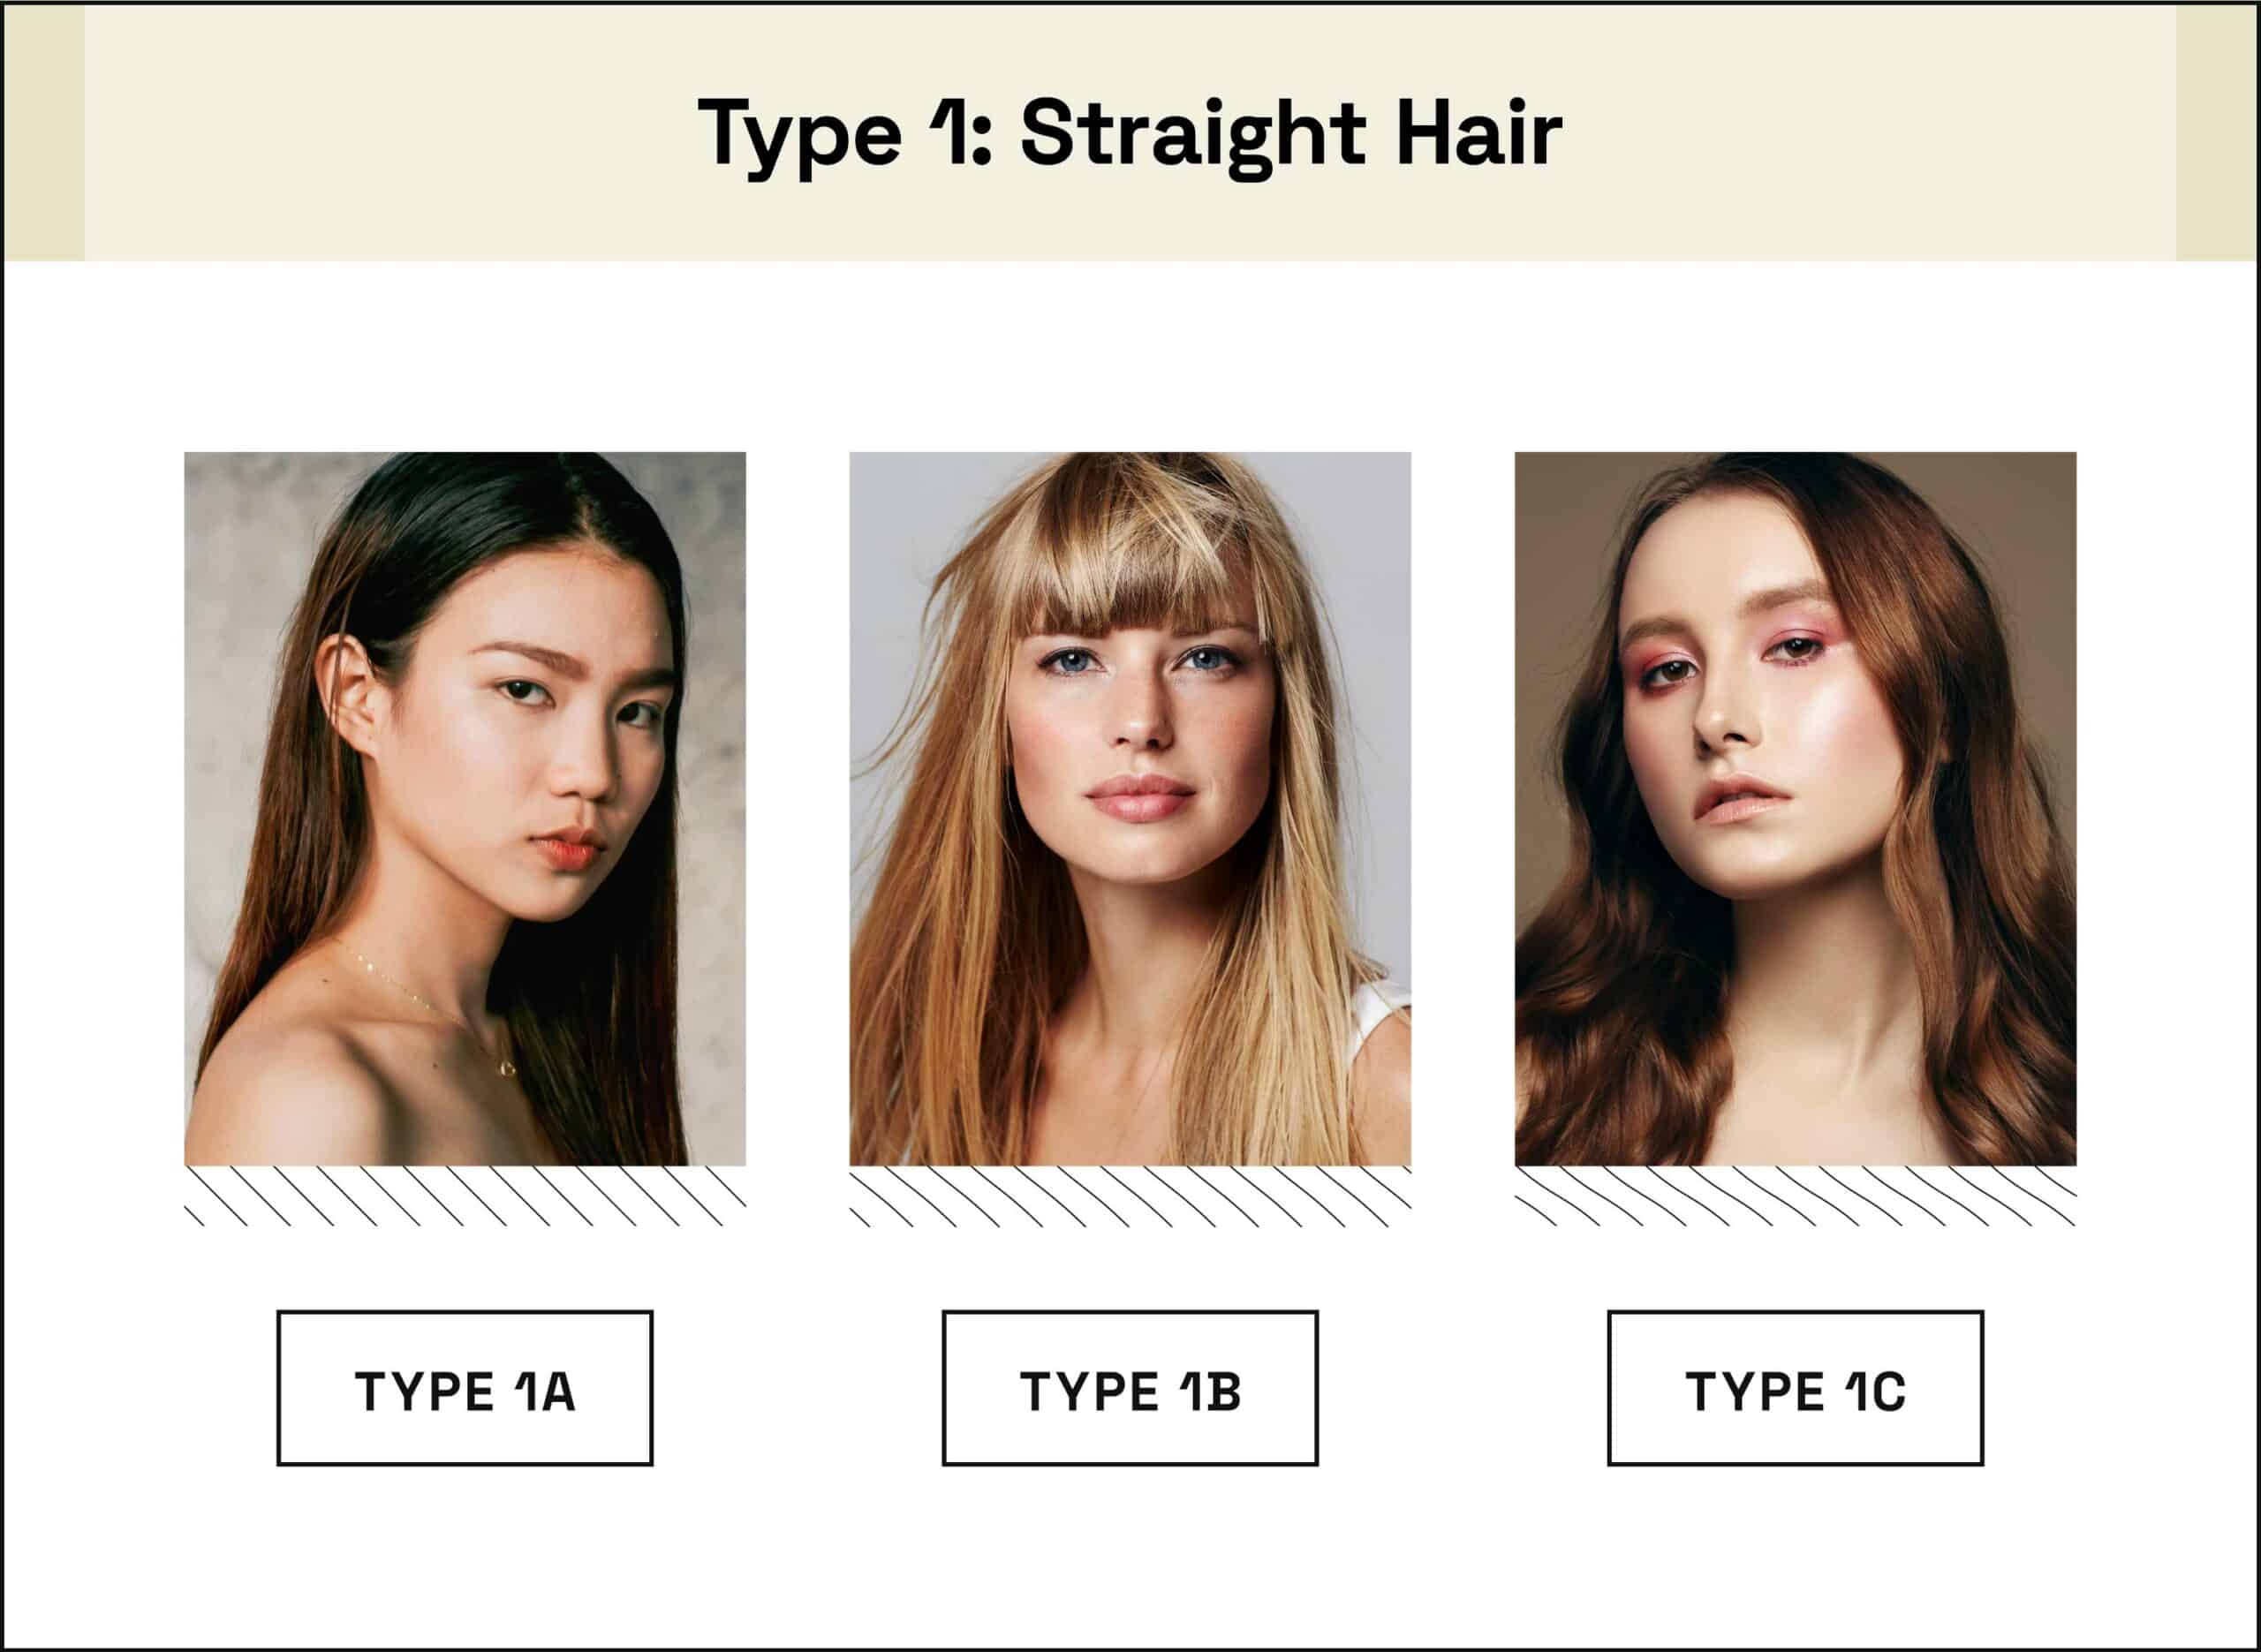 examples of type 1a 1b 1x hair textures